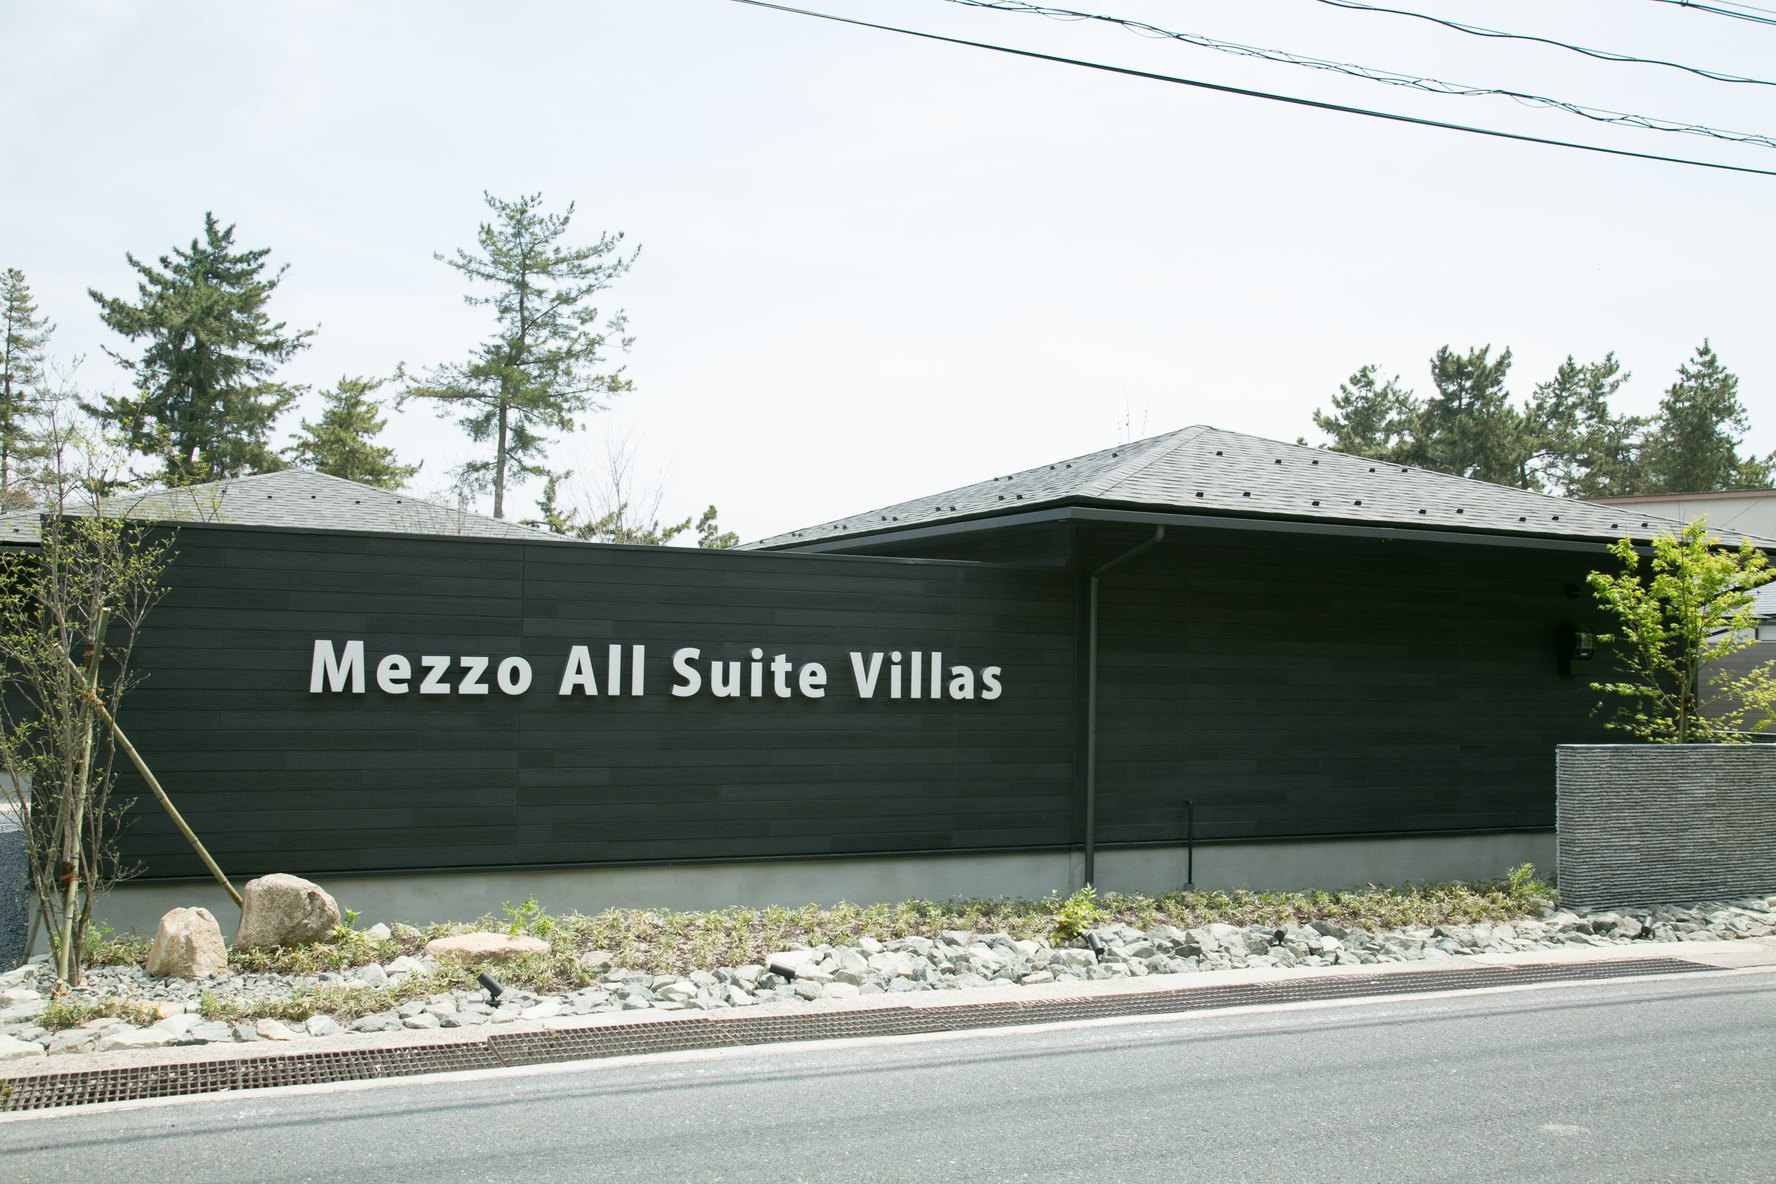 Mezzo ALL SUITE VILLAS